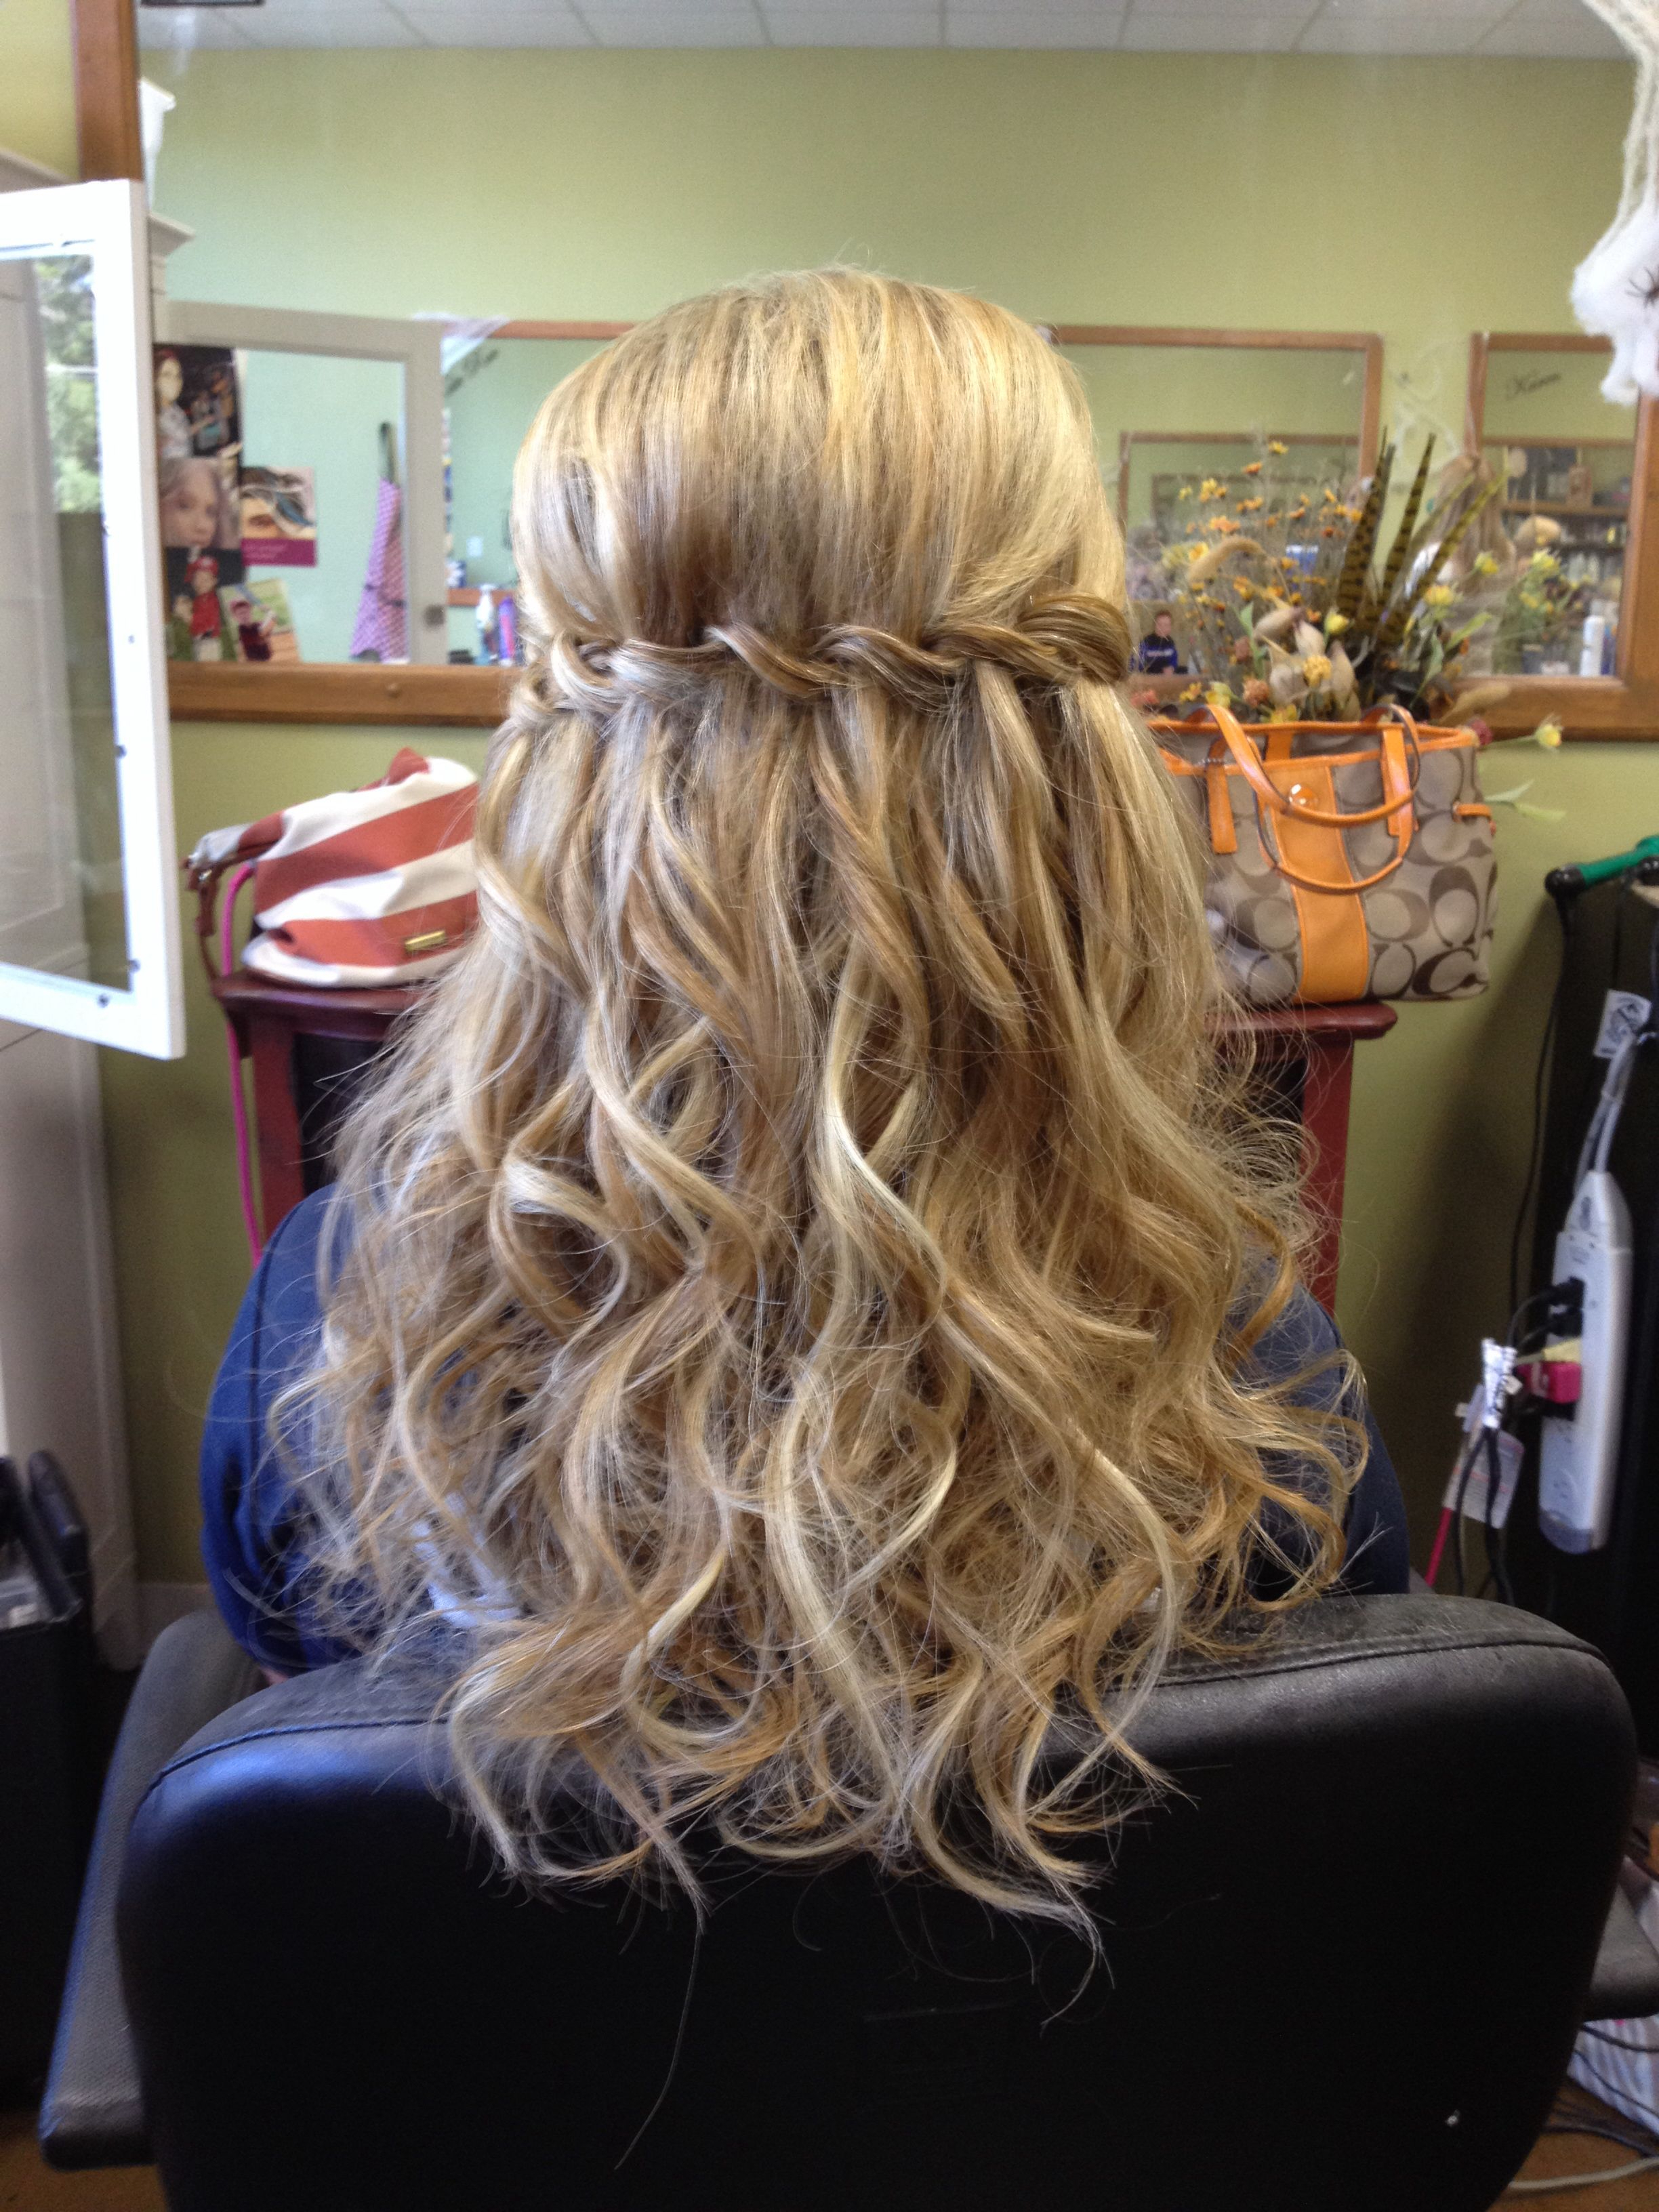 2017 Chic Waterfall Braid Prom Updos Within Waterfall Braid With Extensions, Curls, Half Up, Bridal Party (View 2 of 20)